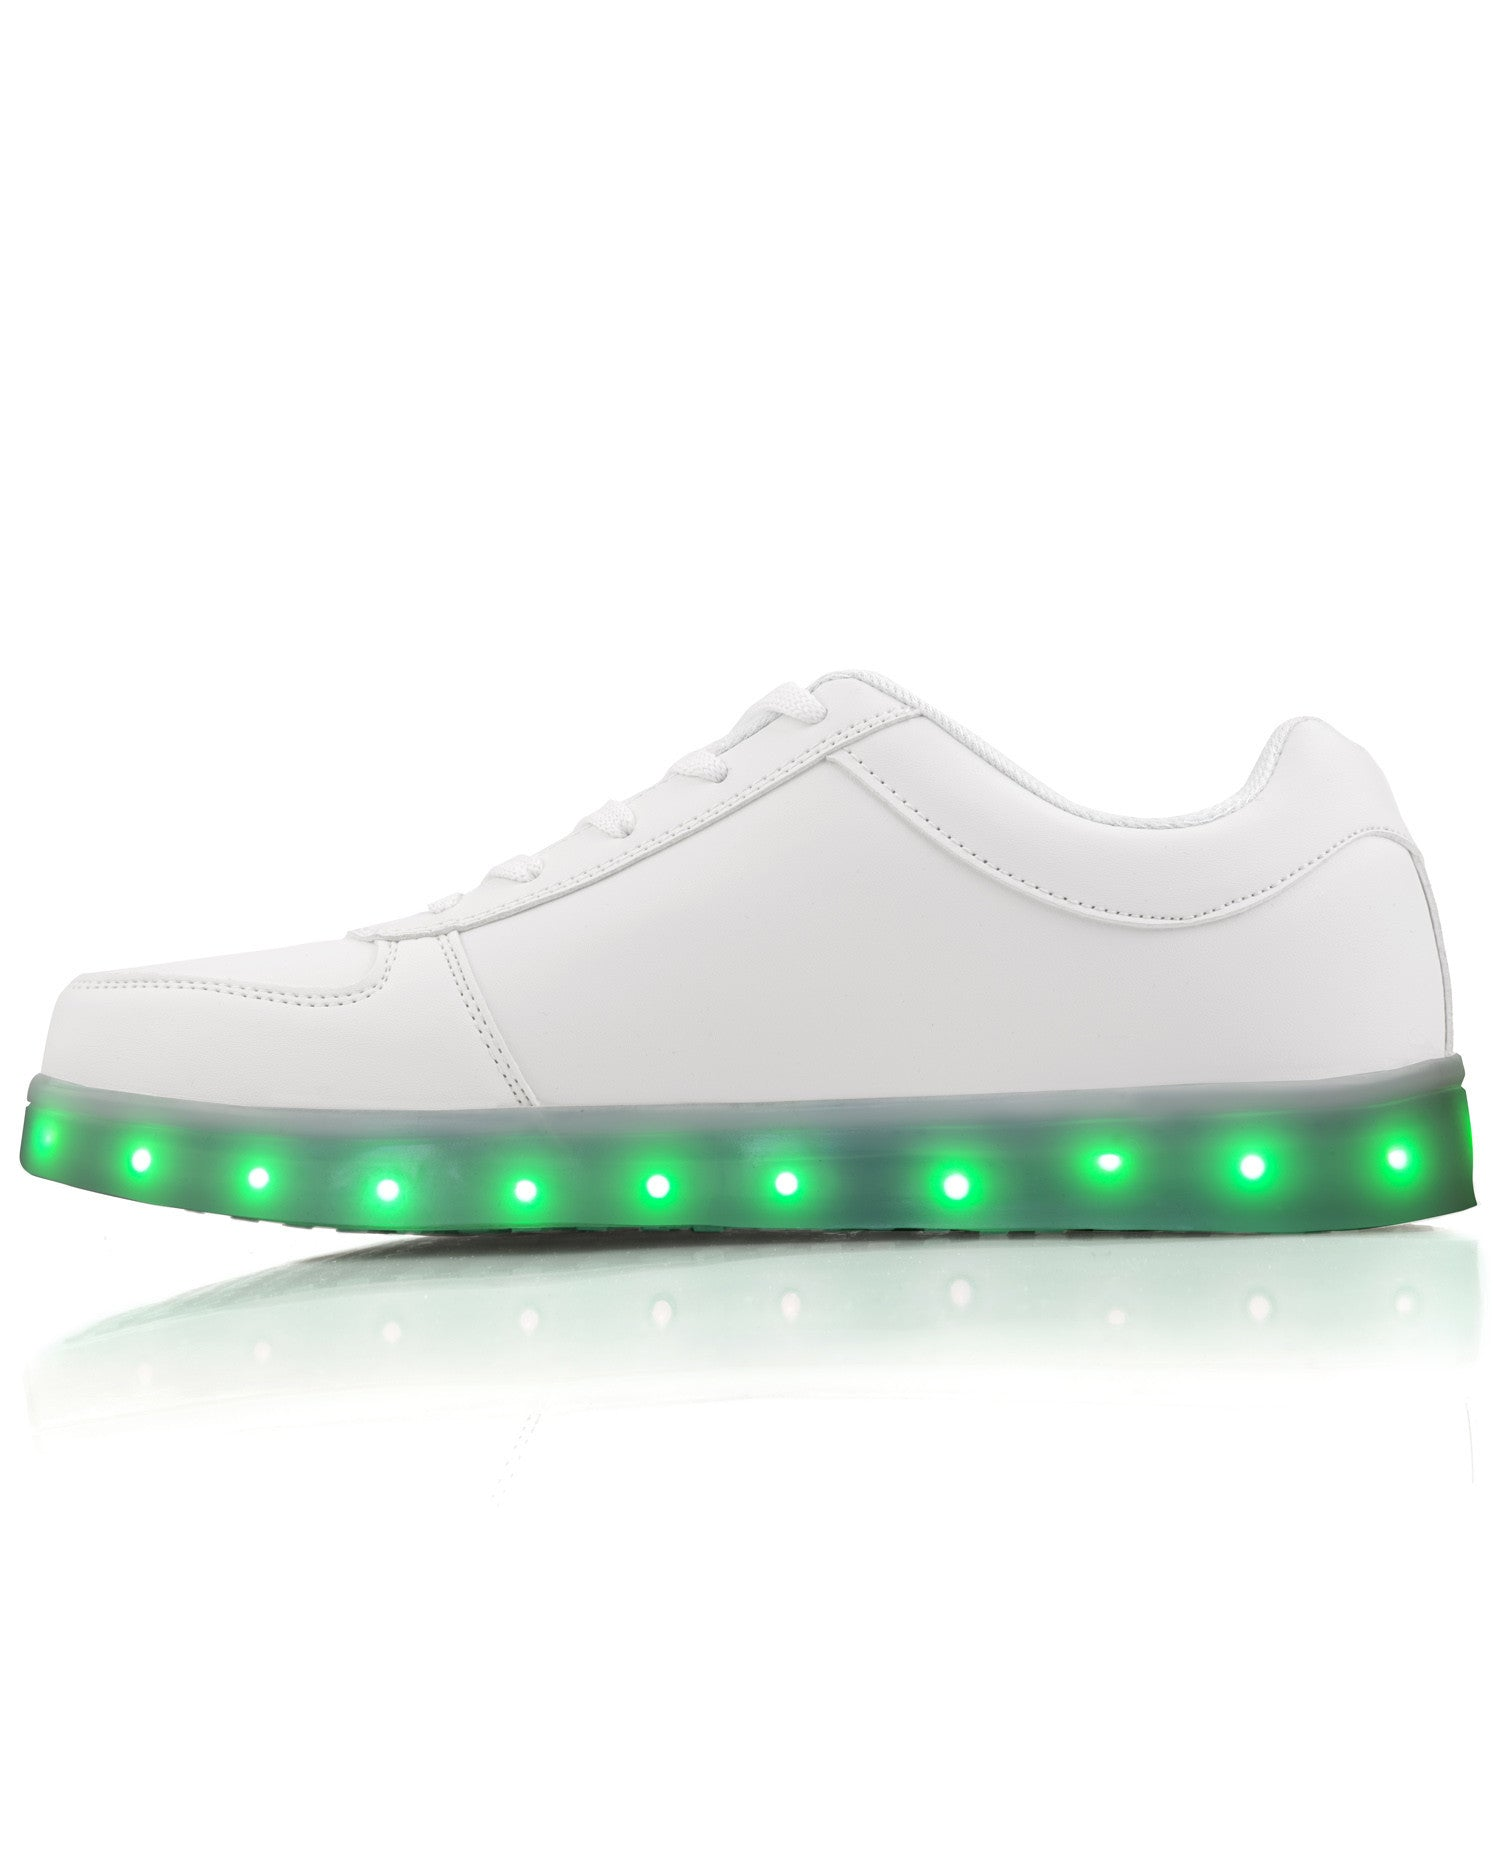 Electric Shoes - All Black - Electric Styles | World's Number 1 Light Up Shoe Store - {product_type}} -  - 12